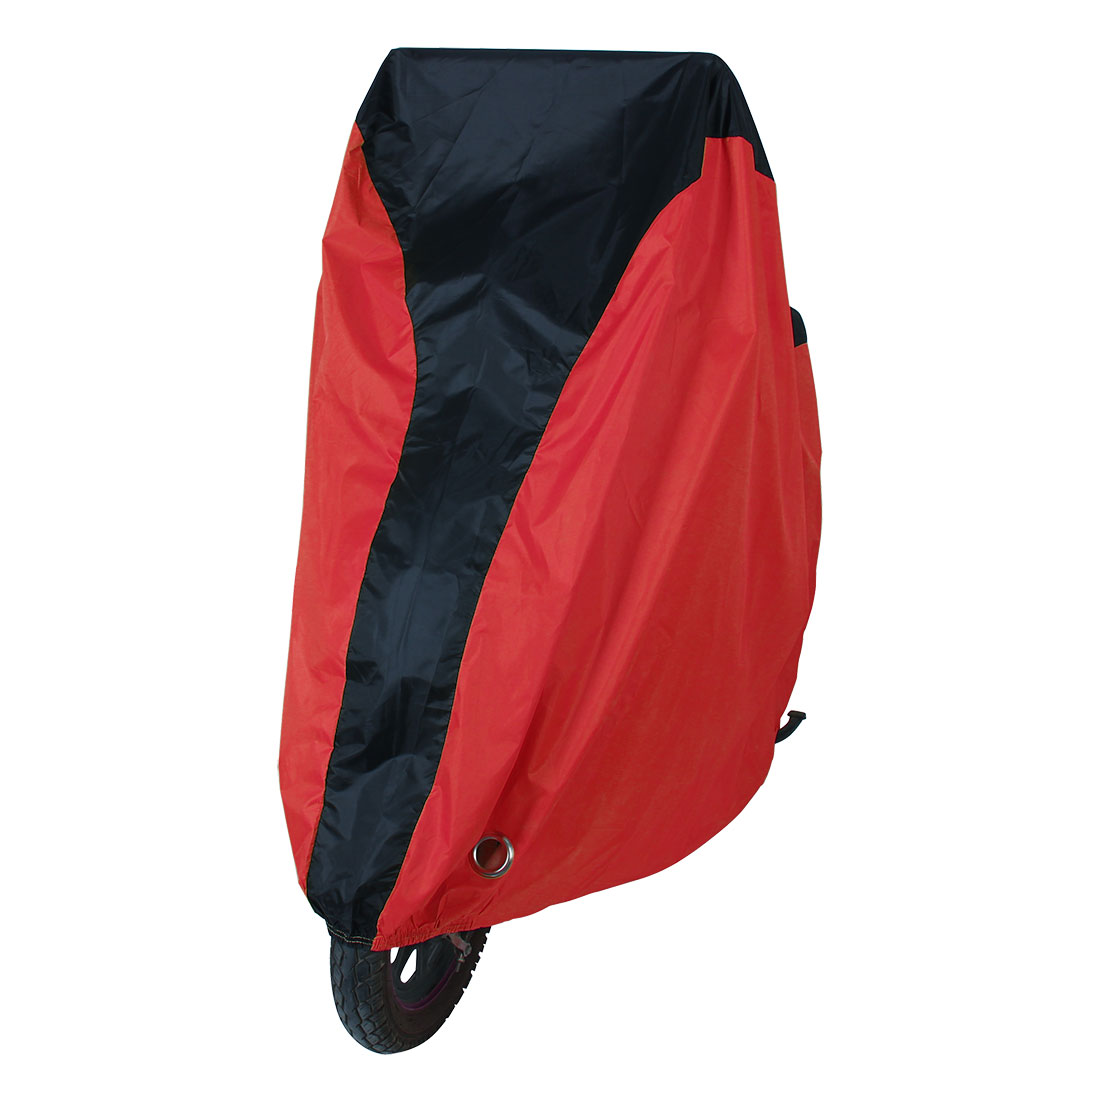 Outdoor Bike Bicycle Rain Dust Cover Water Resistant Garage Scooter Protector L Red